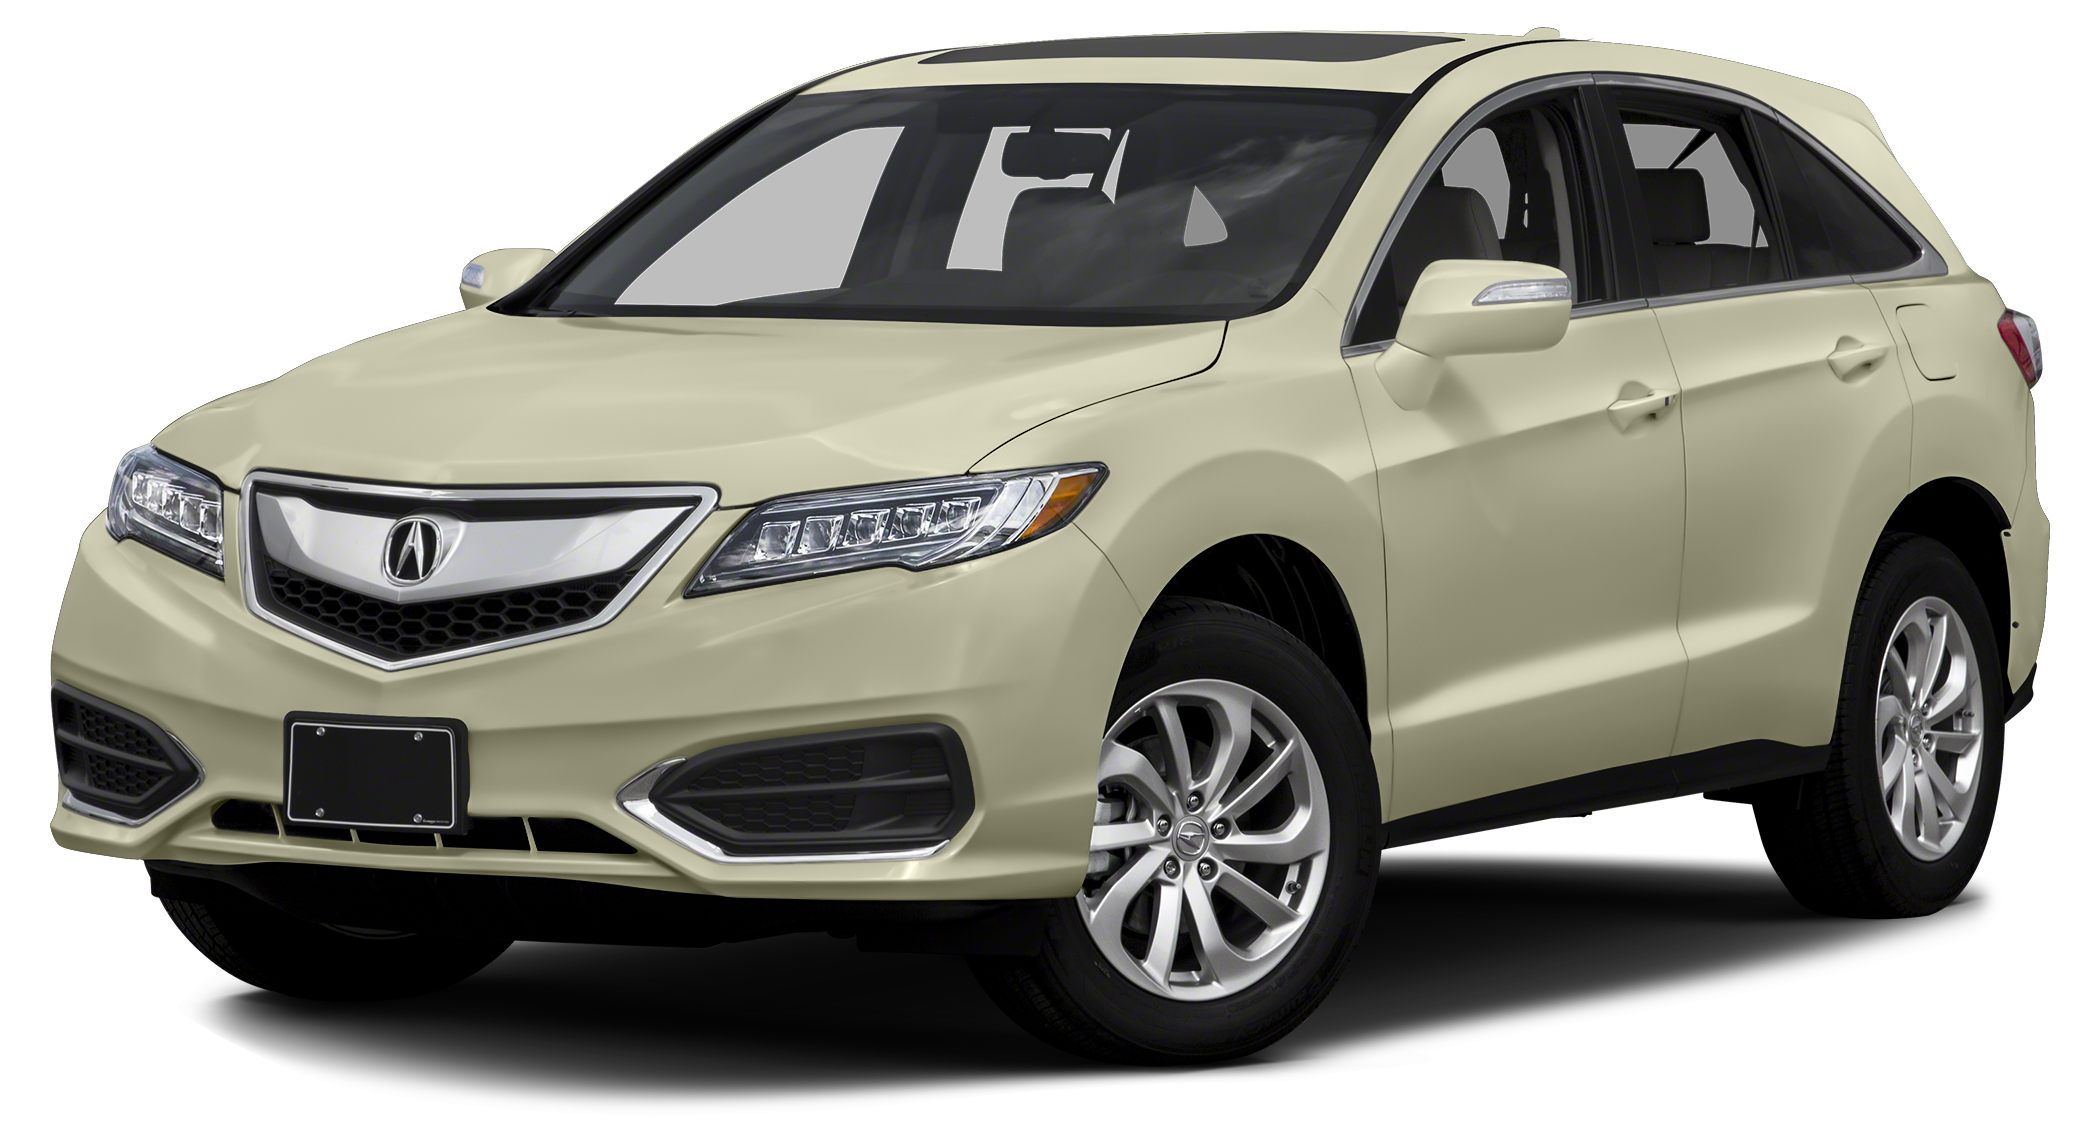 2016 Acura RDX Technology The 2016 Acura RDX is a powerful compact crossover that offers a stylish